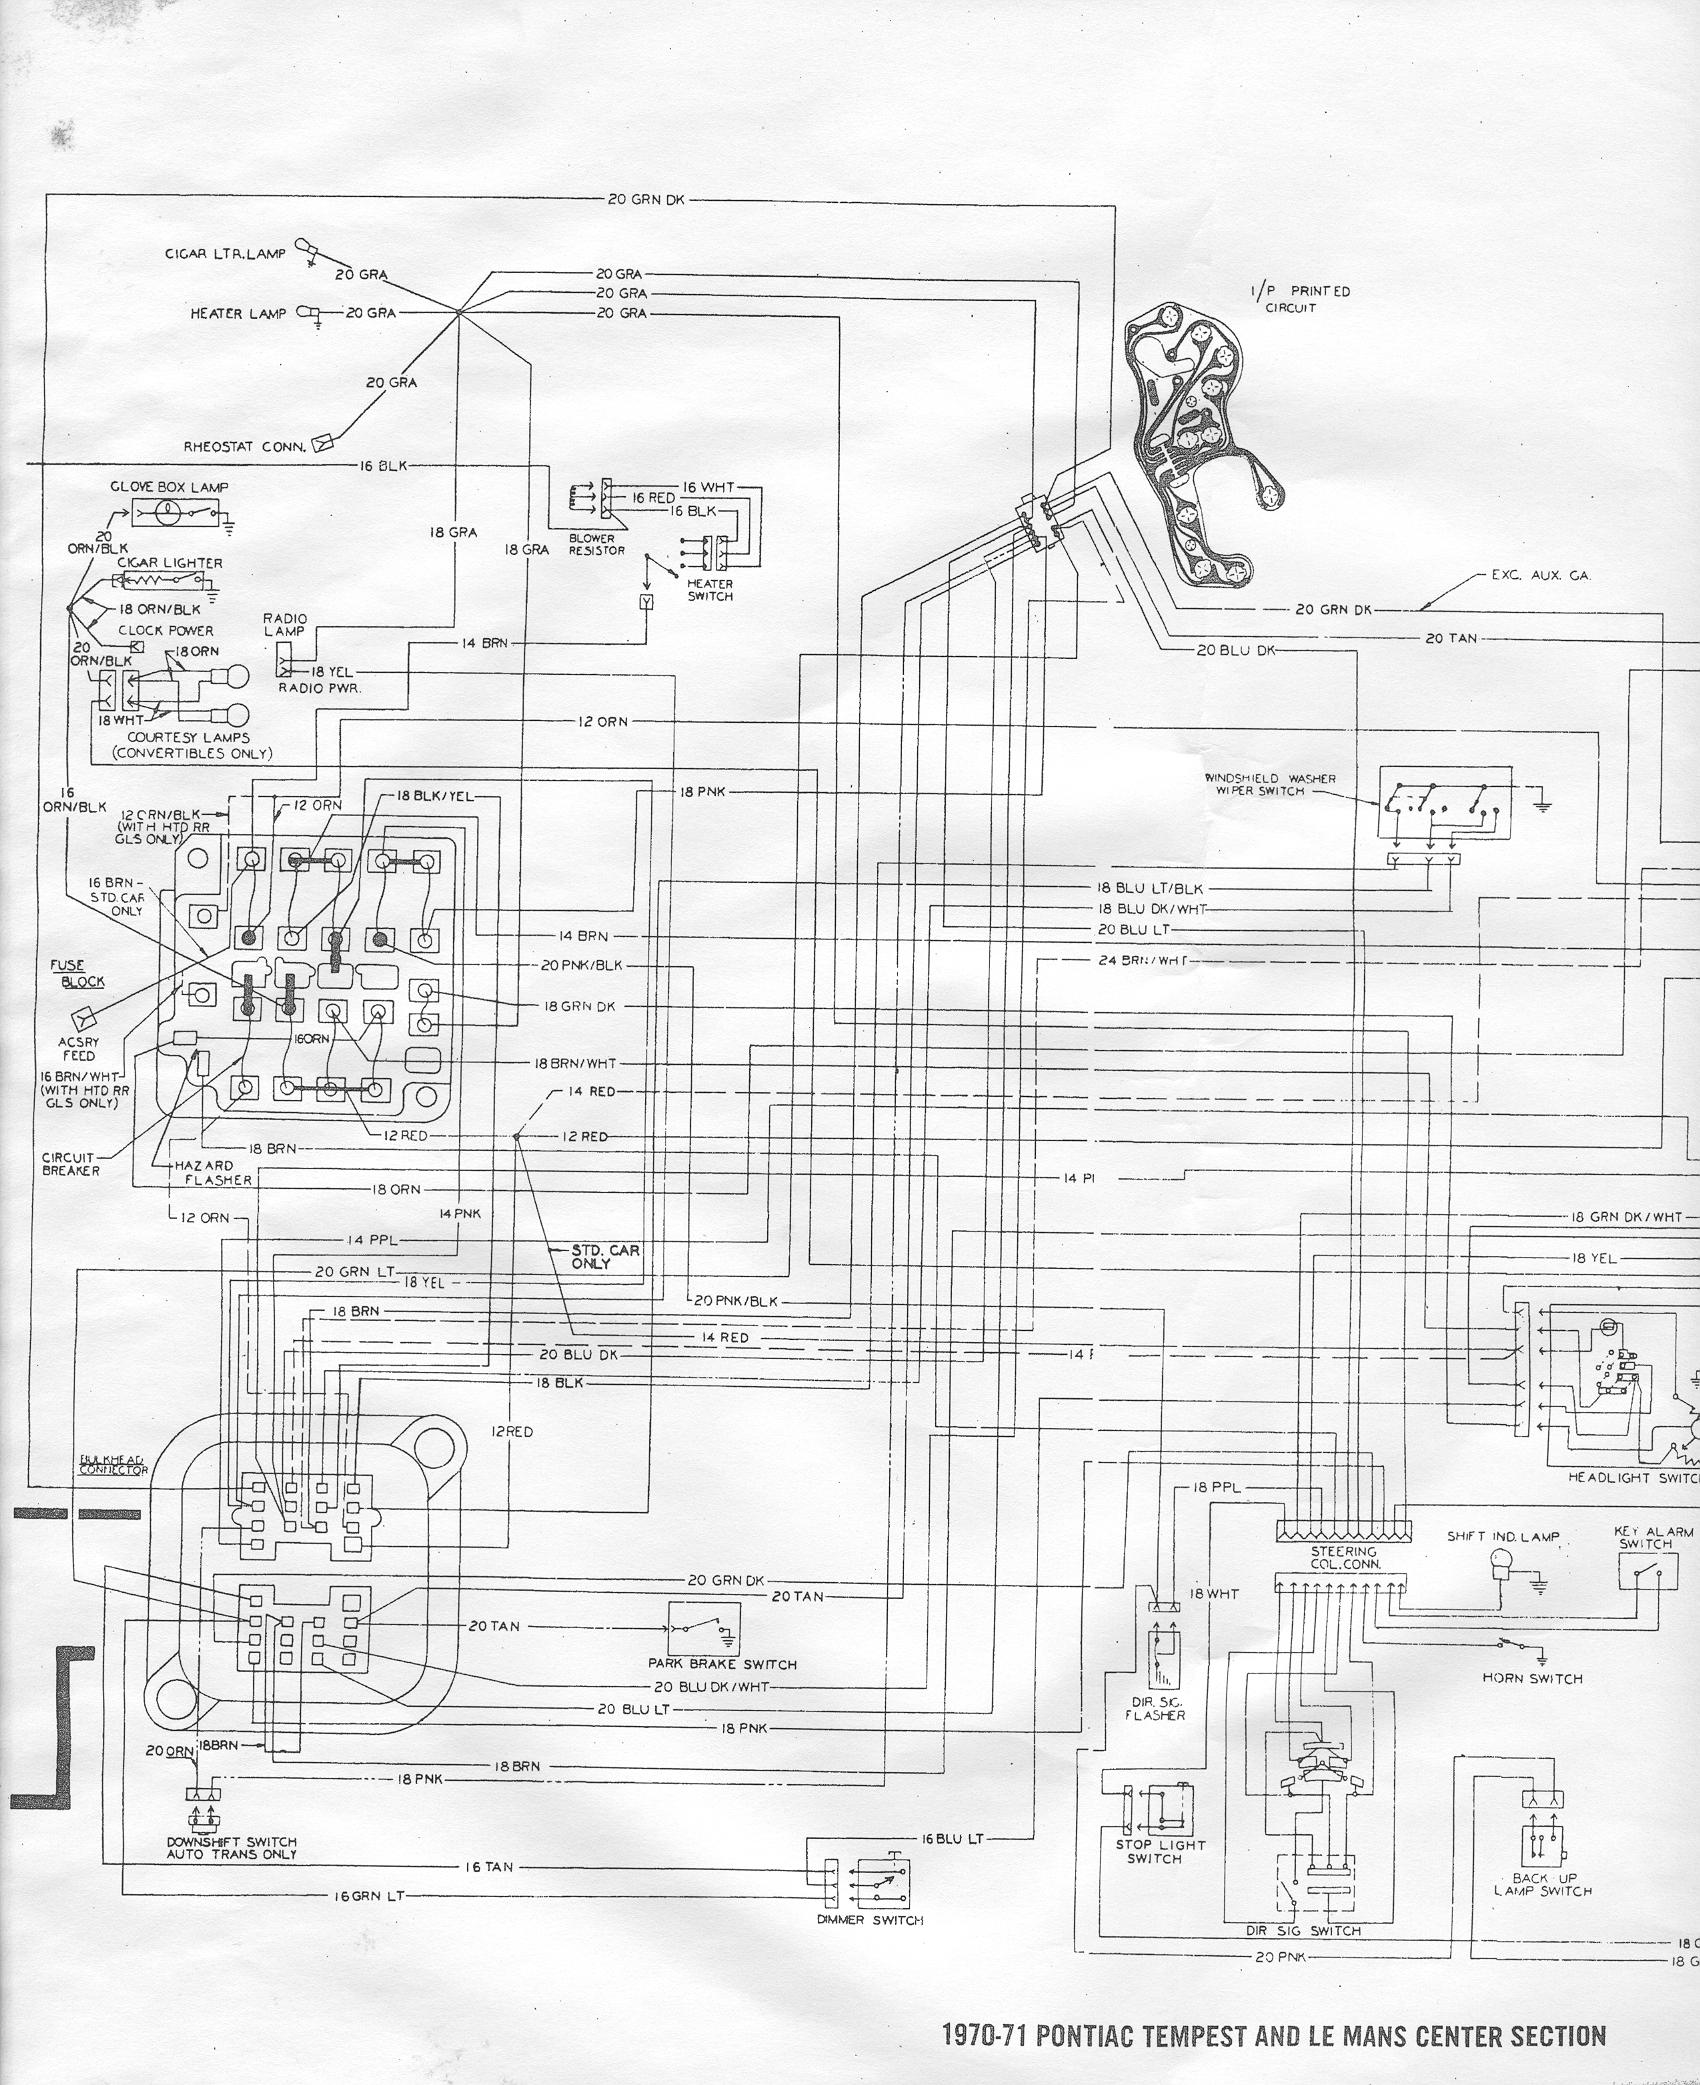 1968 chevelle wiper motor wiring diagram images 1966 gto wiring diagram 1966 desconectices